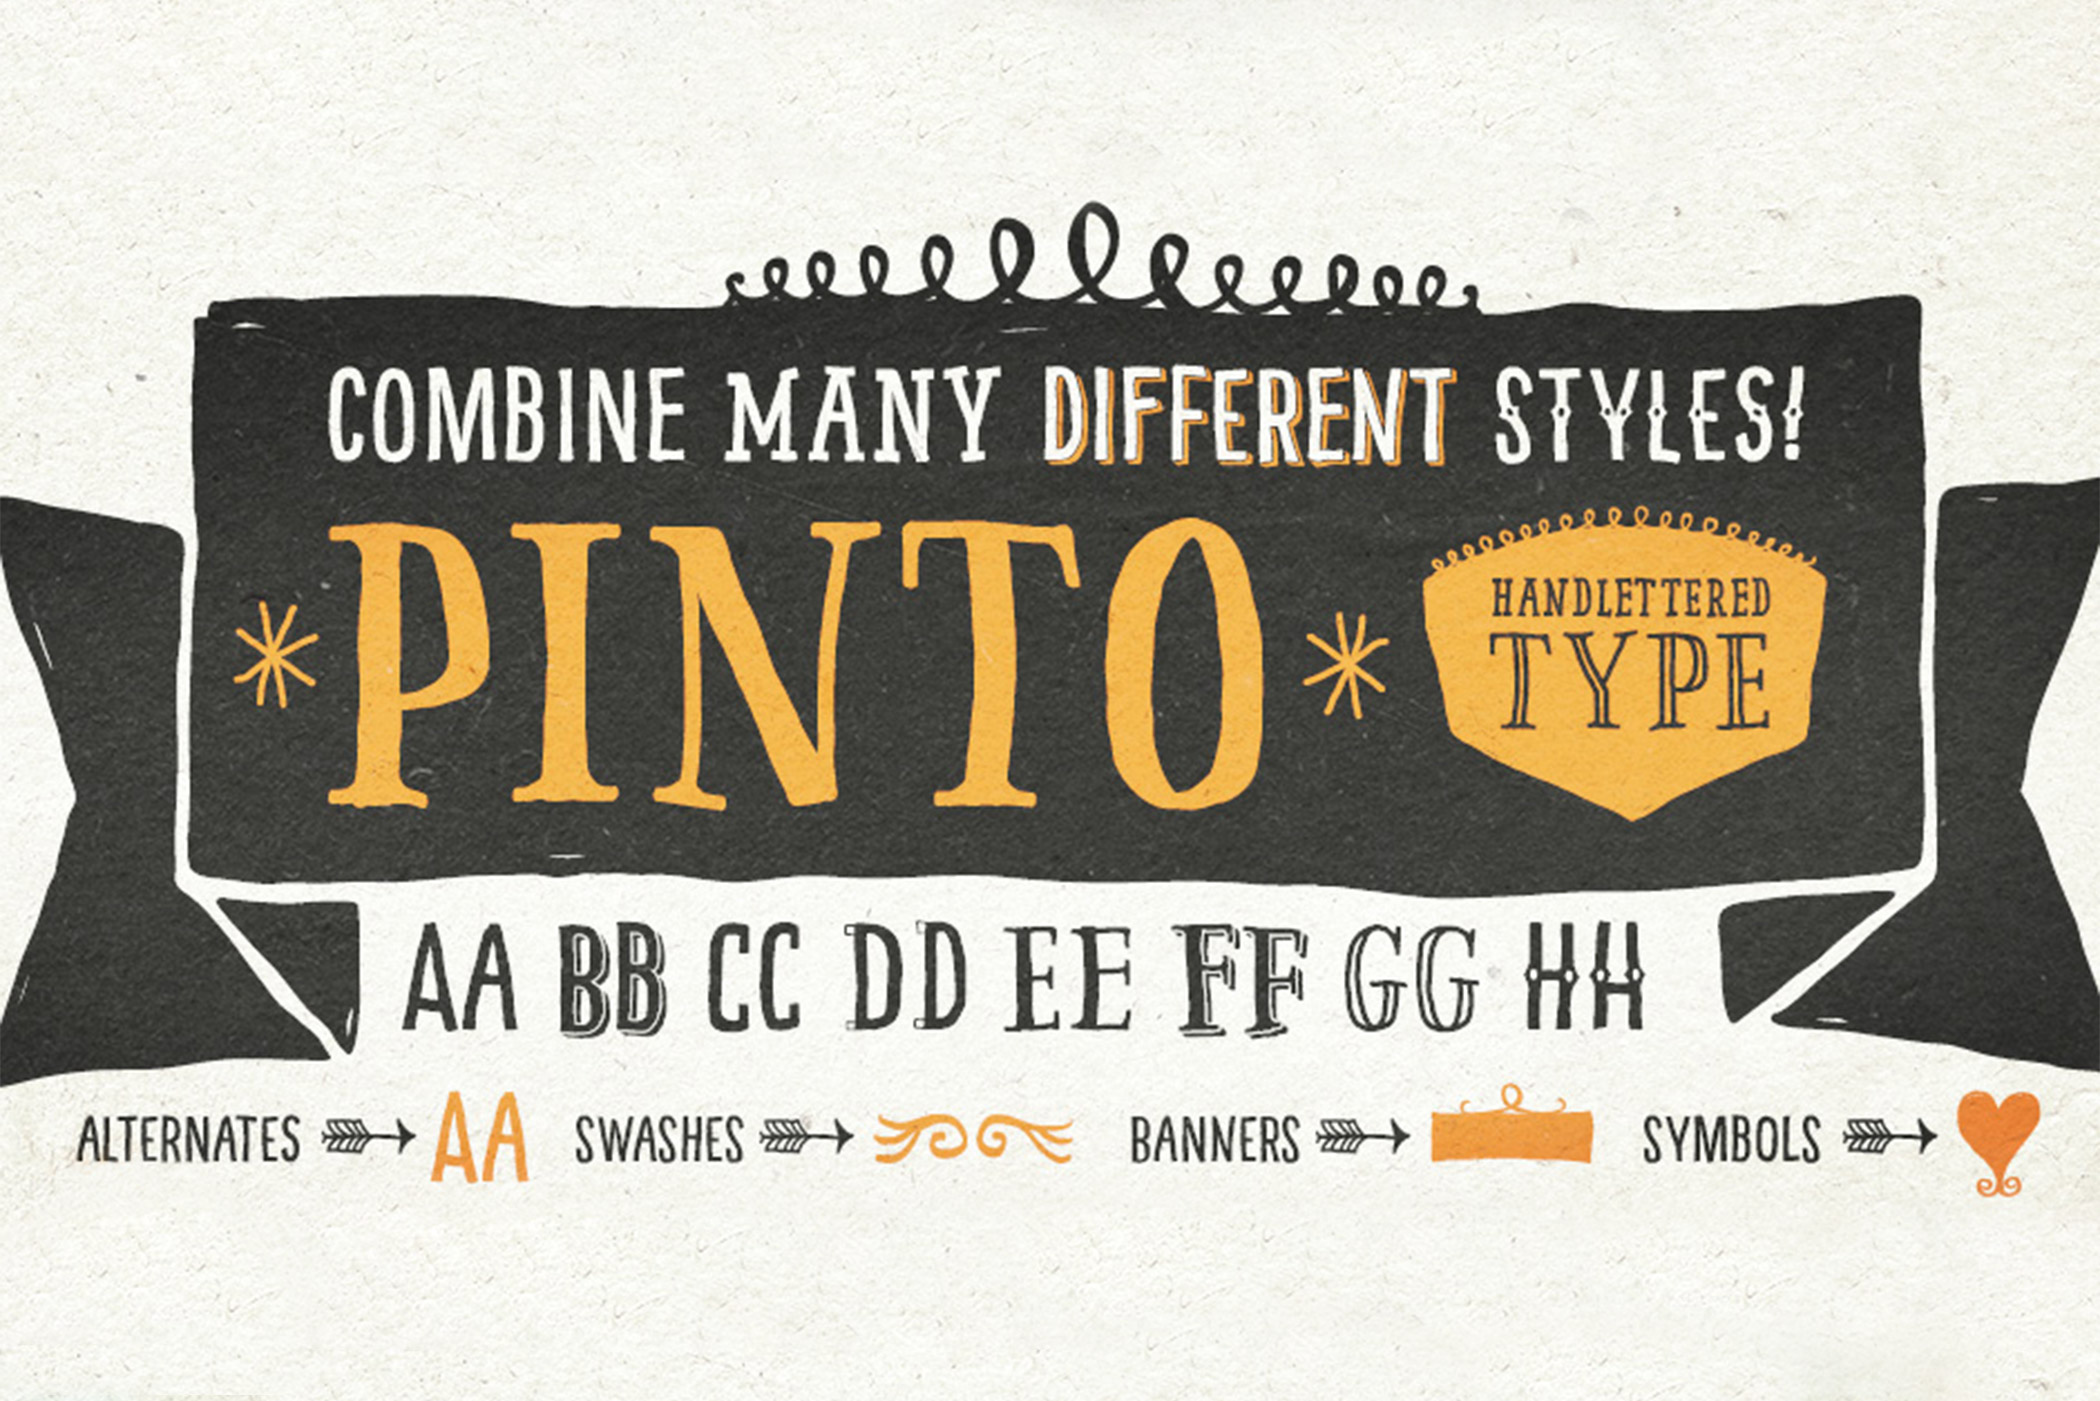 pinto handlettered